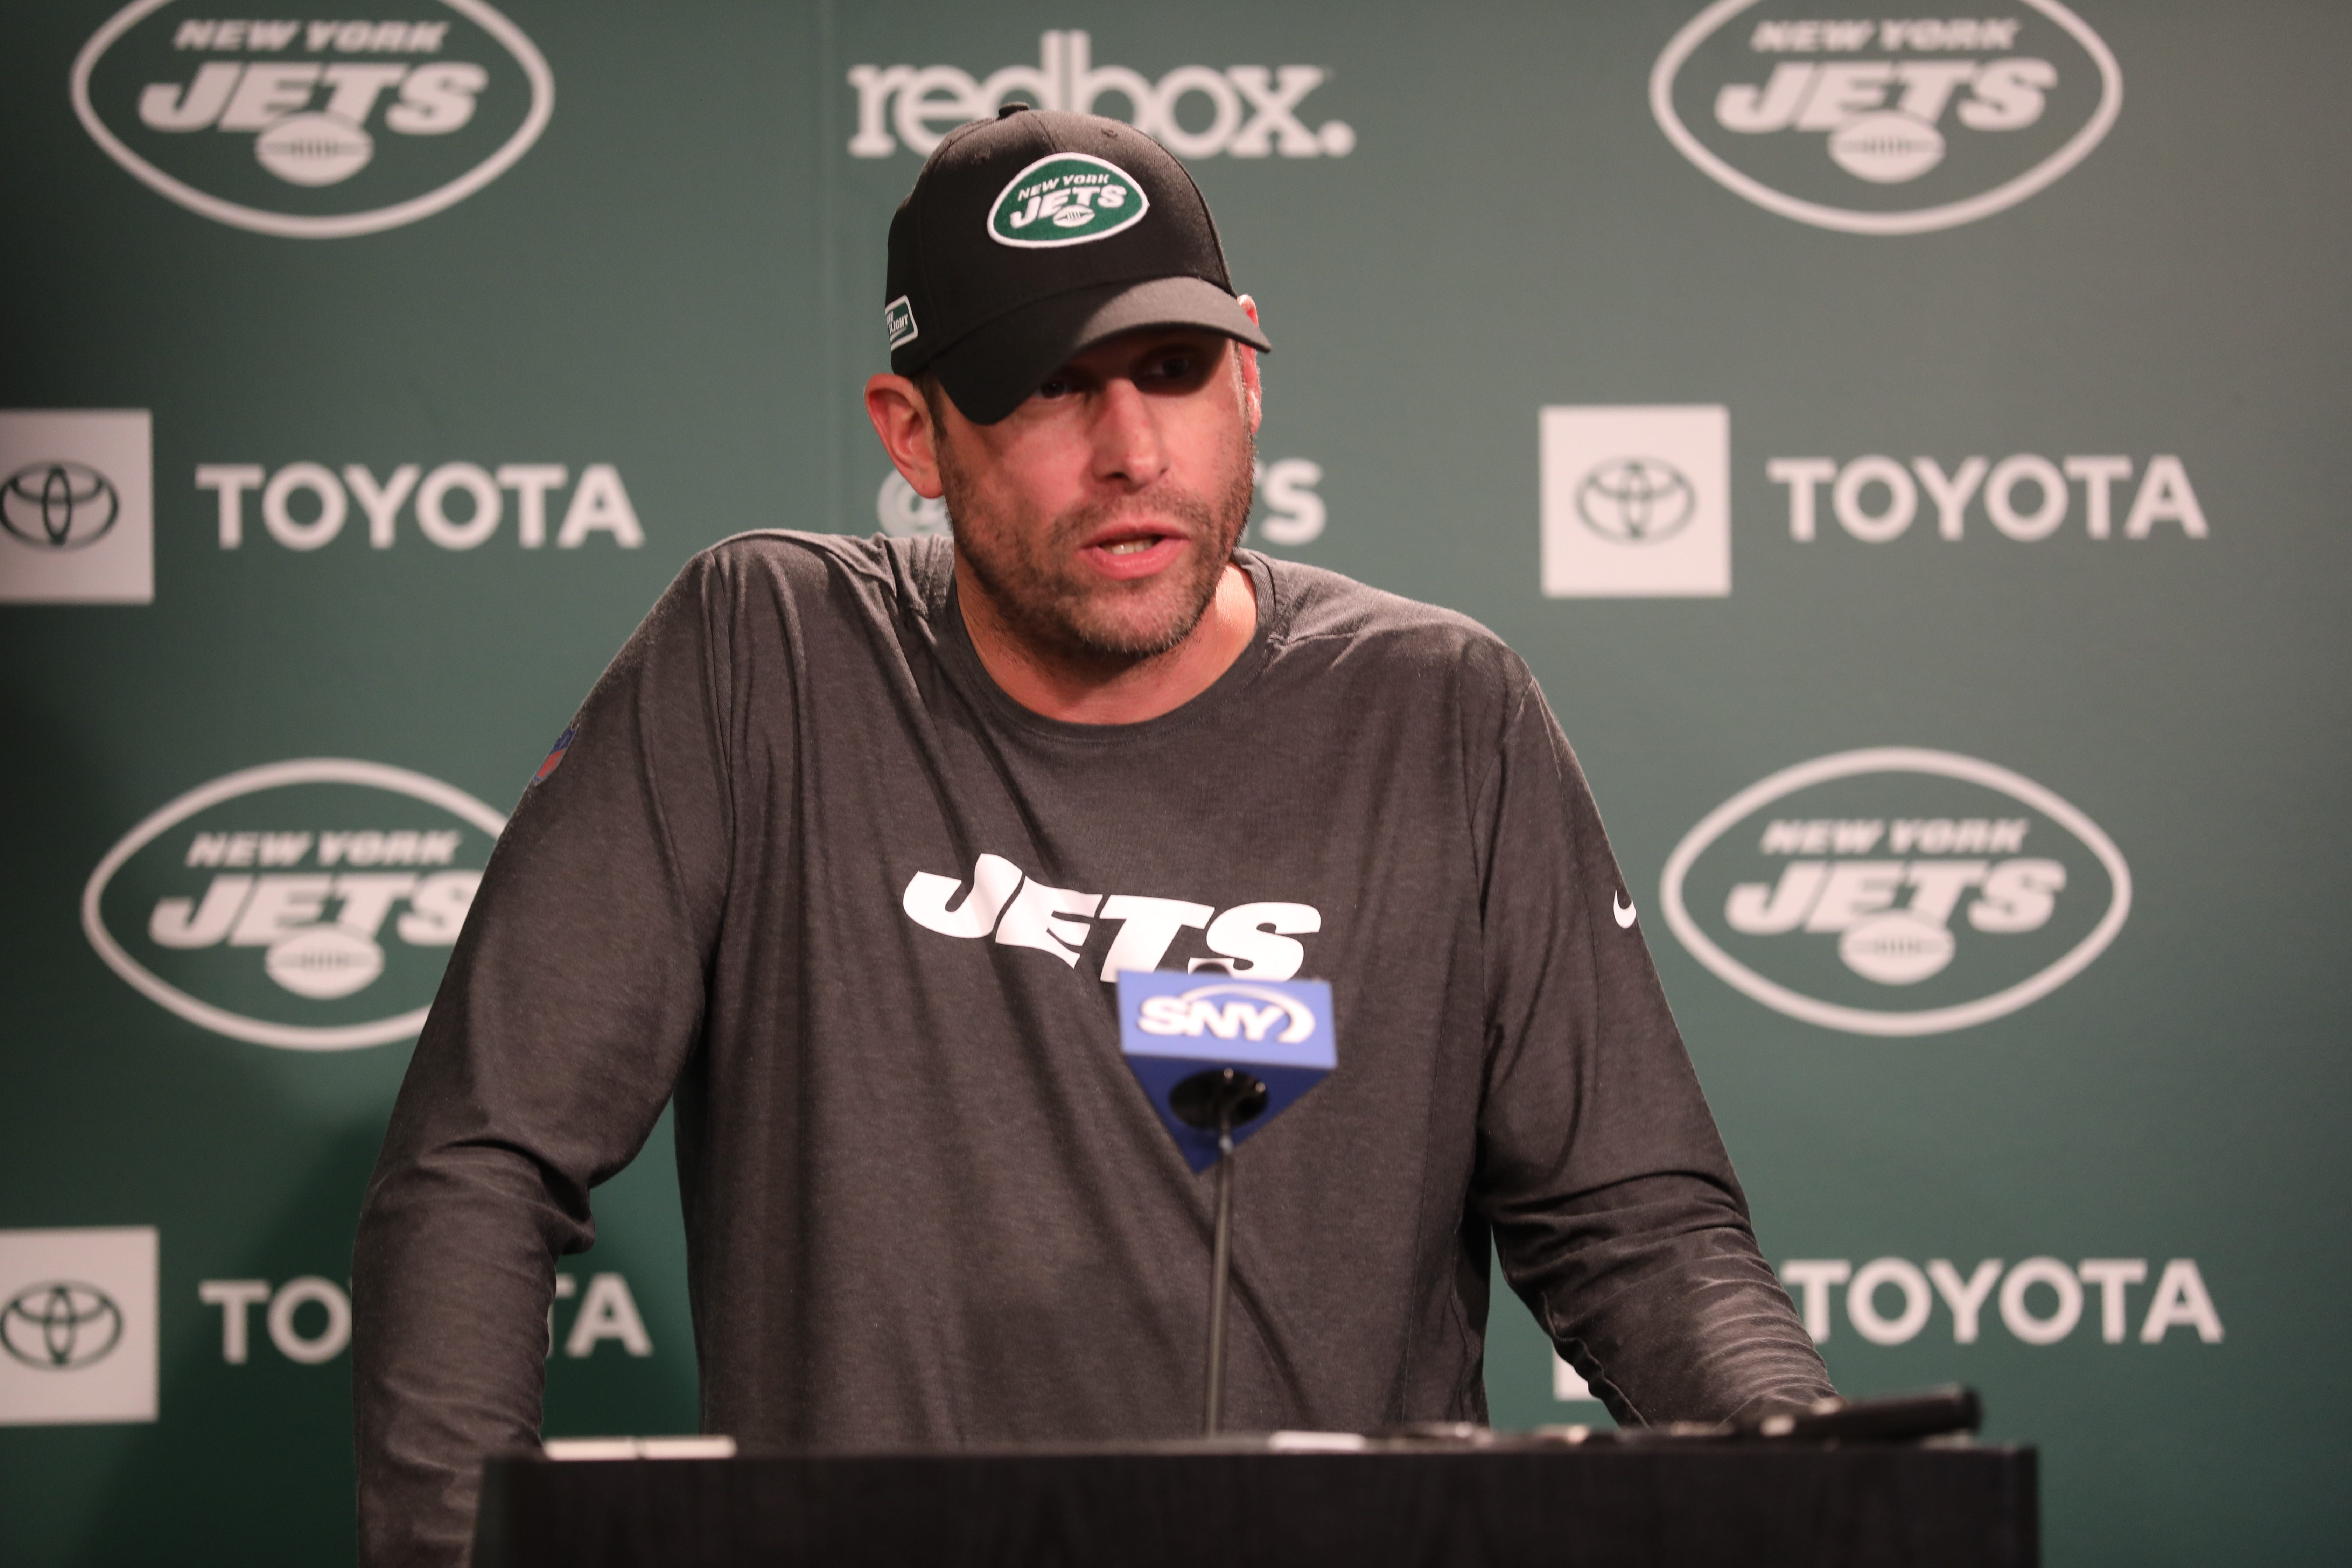 Jets coach Adam Gase says reports of rift with GM Mike Maccagnan made him angry